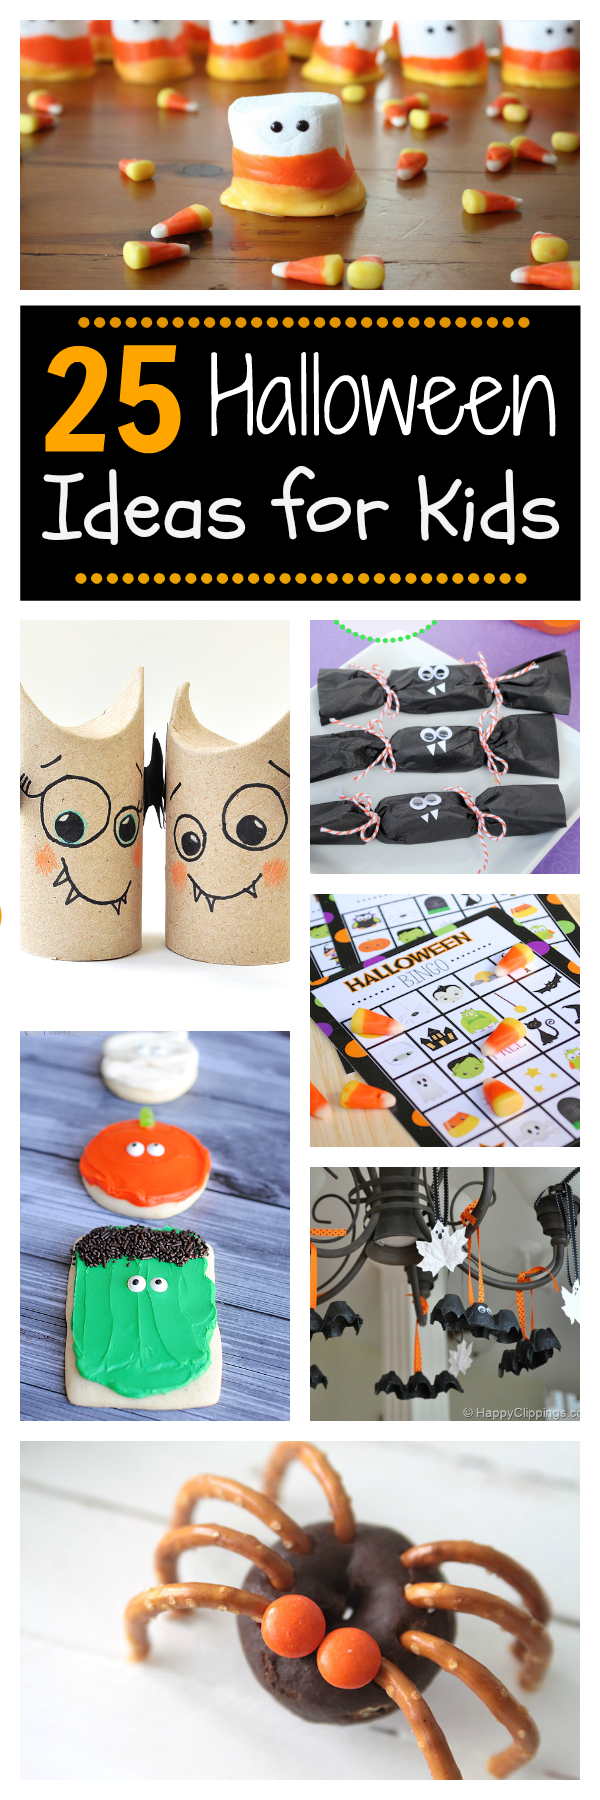 25 Fun Ideas for Kids this Halloween: Halloween Crafts for kids that are perfect for any Halloween party or just as a fun activity for Halloween! #halloween #holidays #crafts #kids